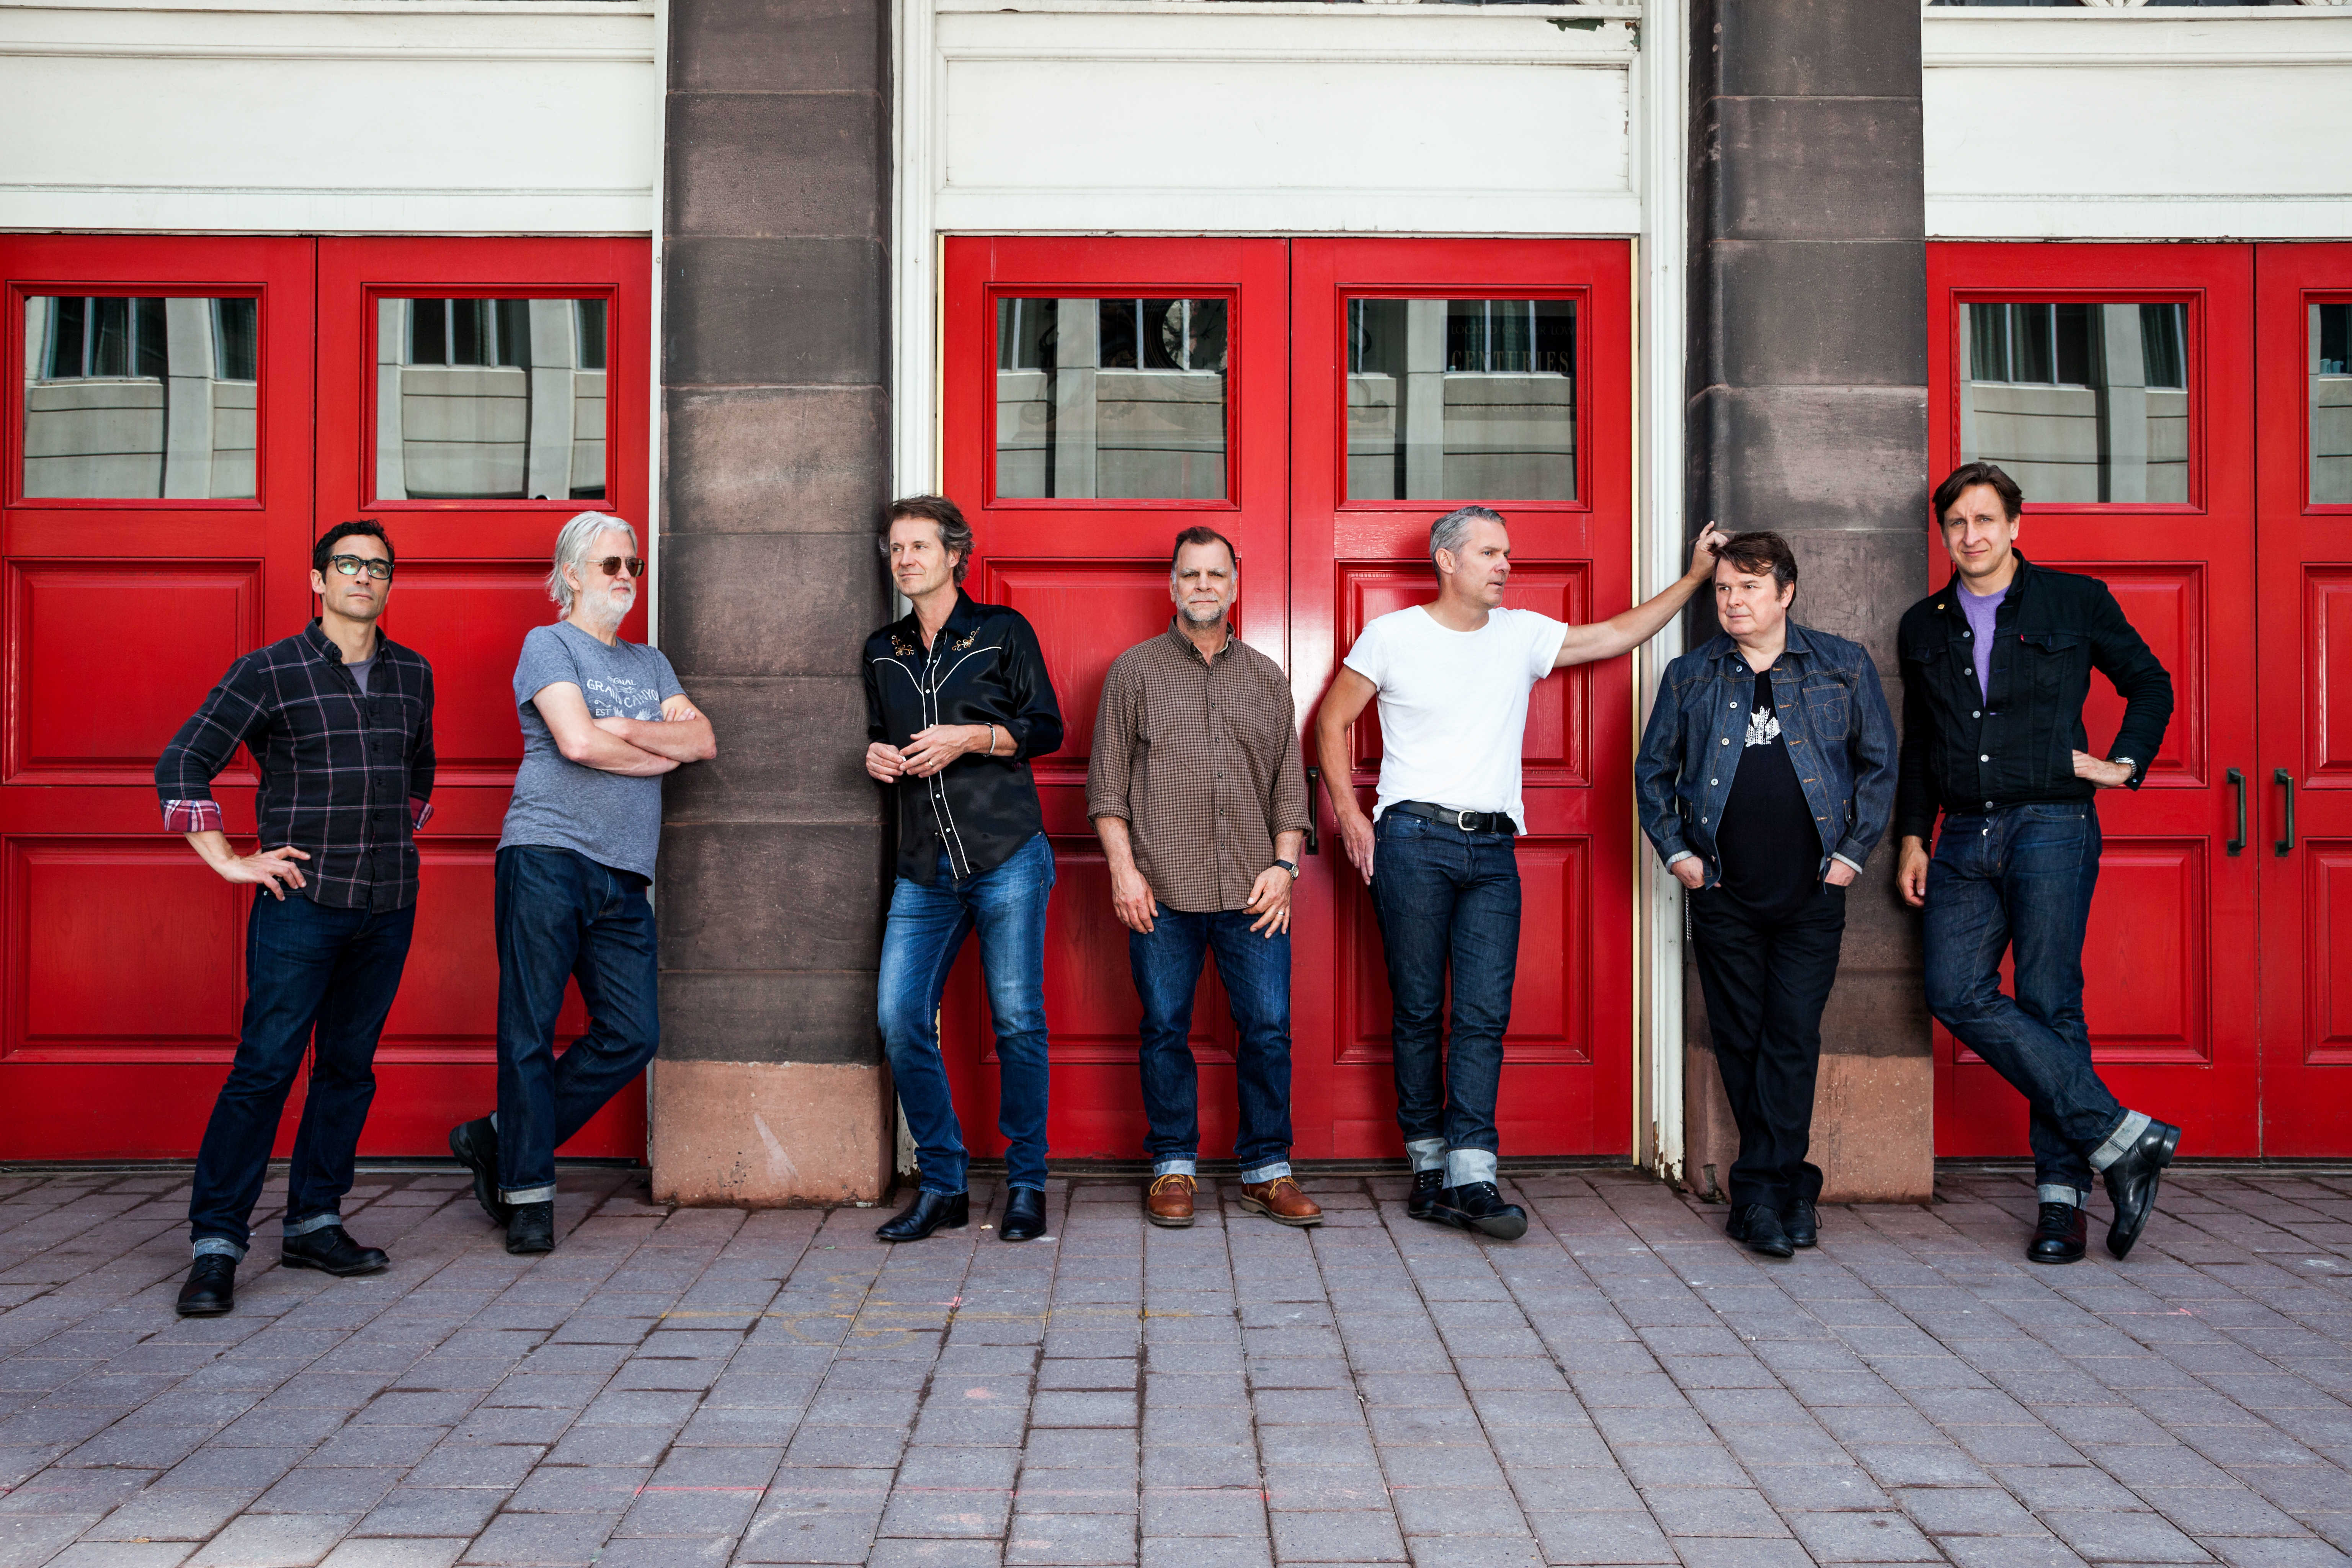 Seven men stand facing either the camera or one another. They all wear jeans and either a t-shirt or a button down shirt. In front of three sets of red doors that lead from the music hall to the street. Two brown stone columns divide the sets of doors. Above the doors are white panelling.